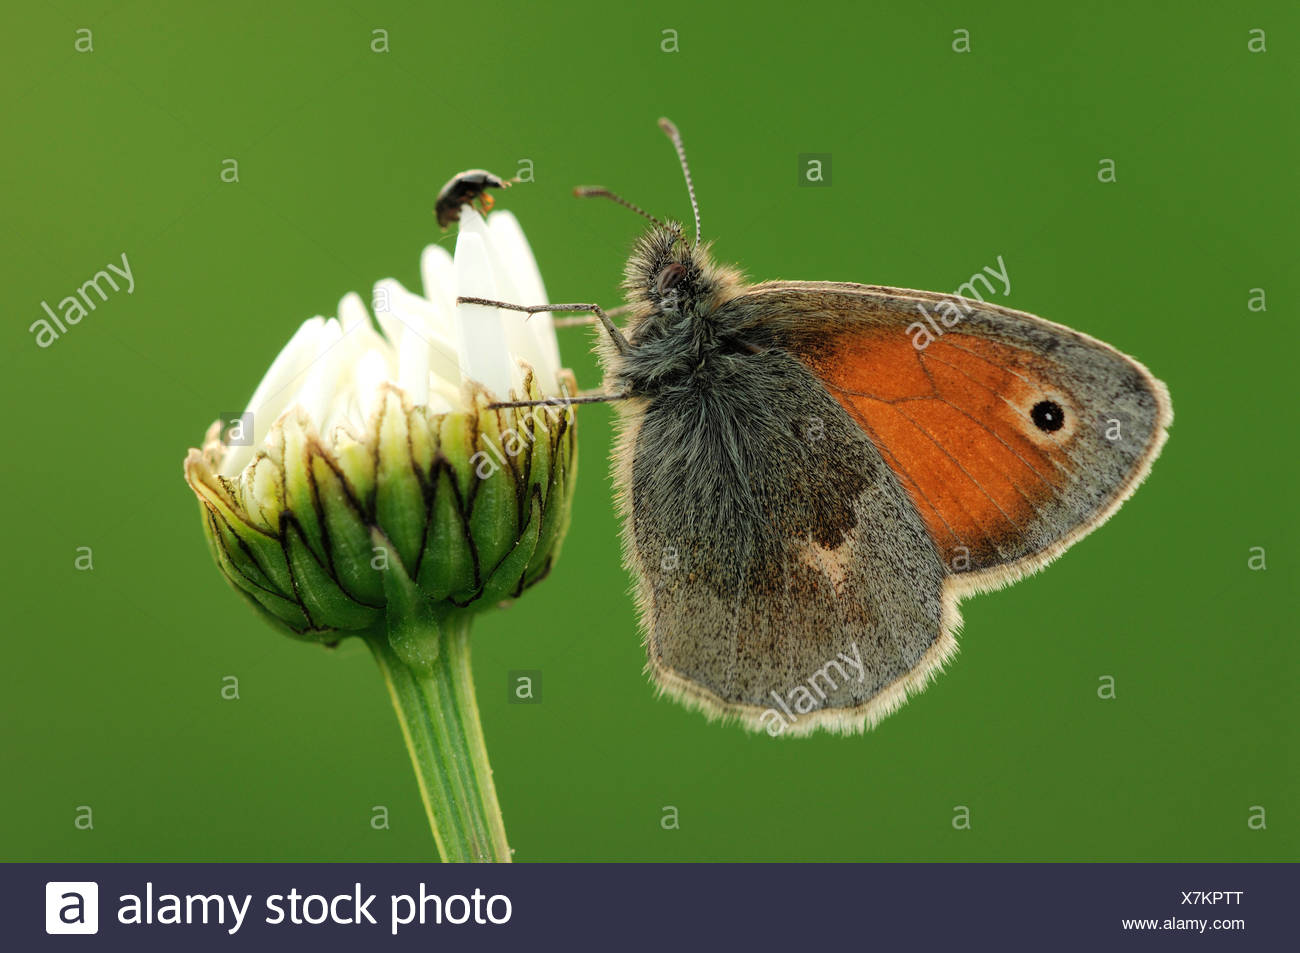 Small heath (butterfly) (Coenonympha pamphilus) - Stock Image